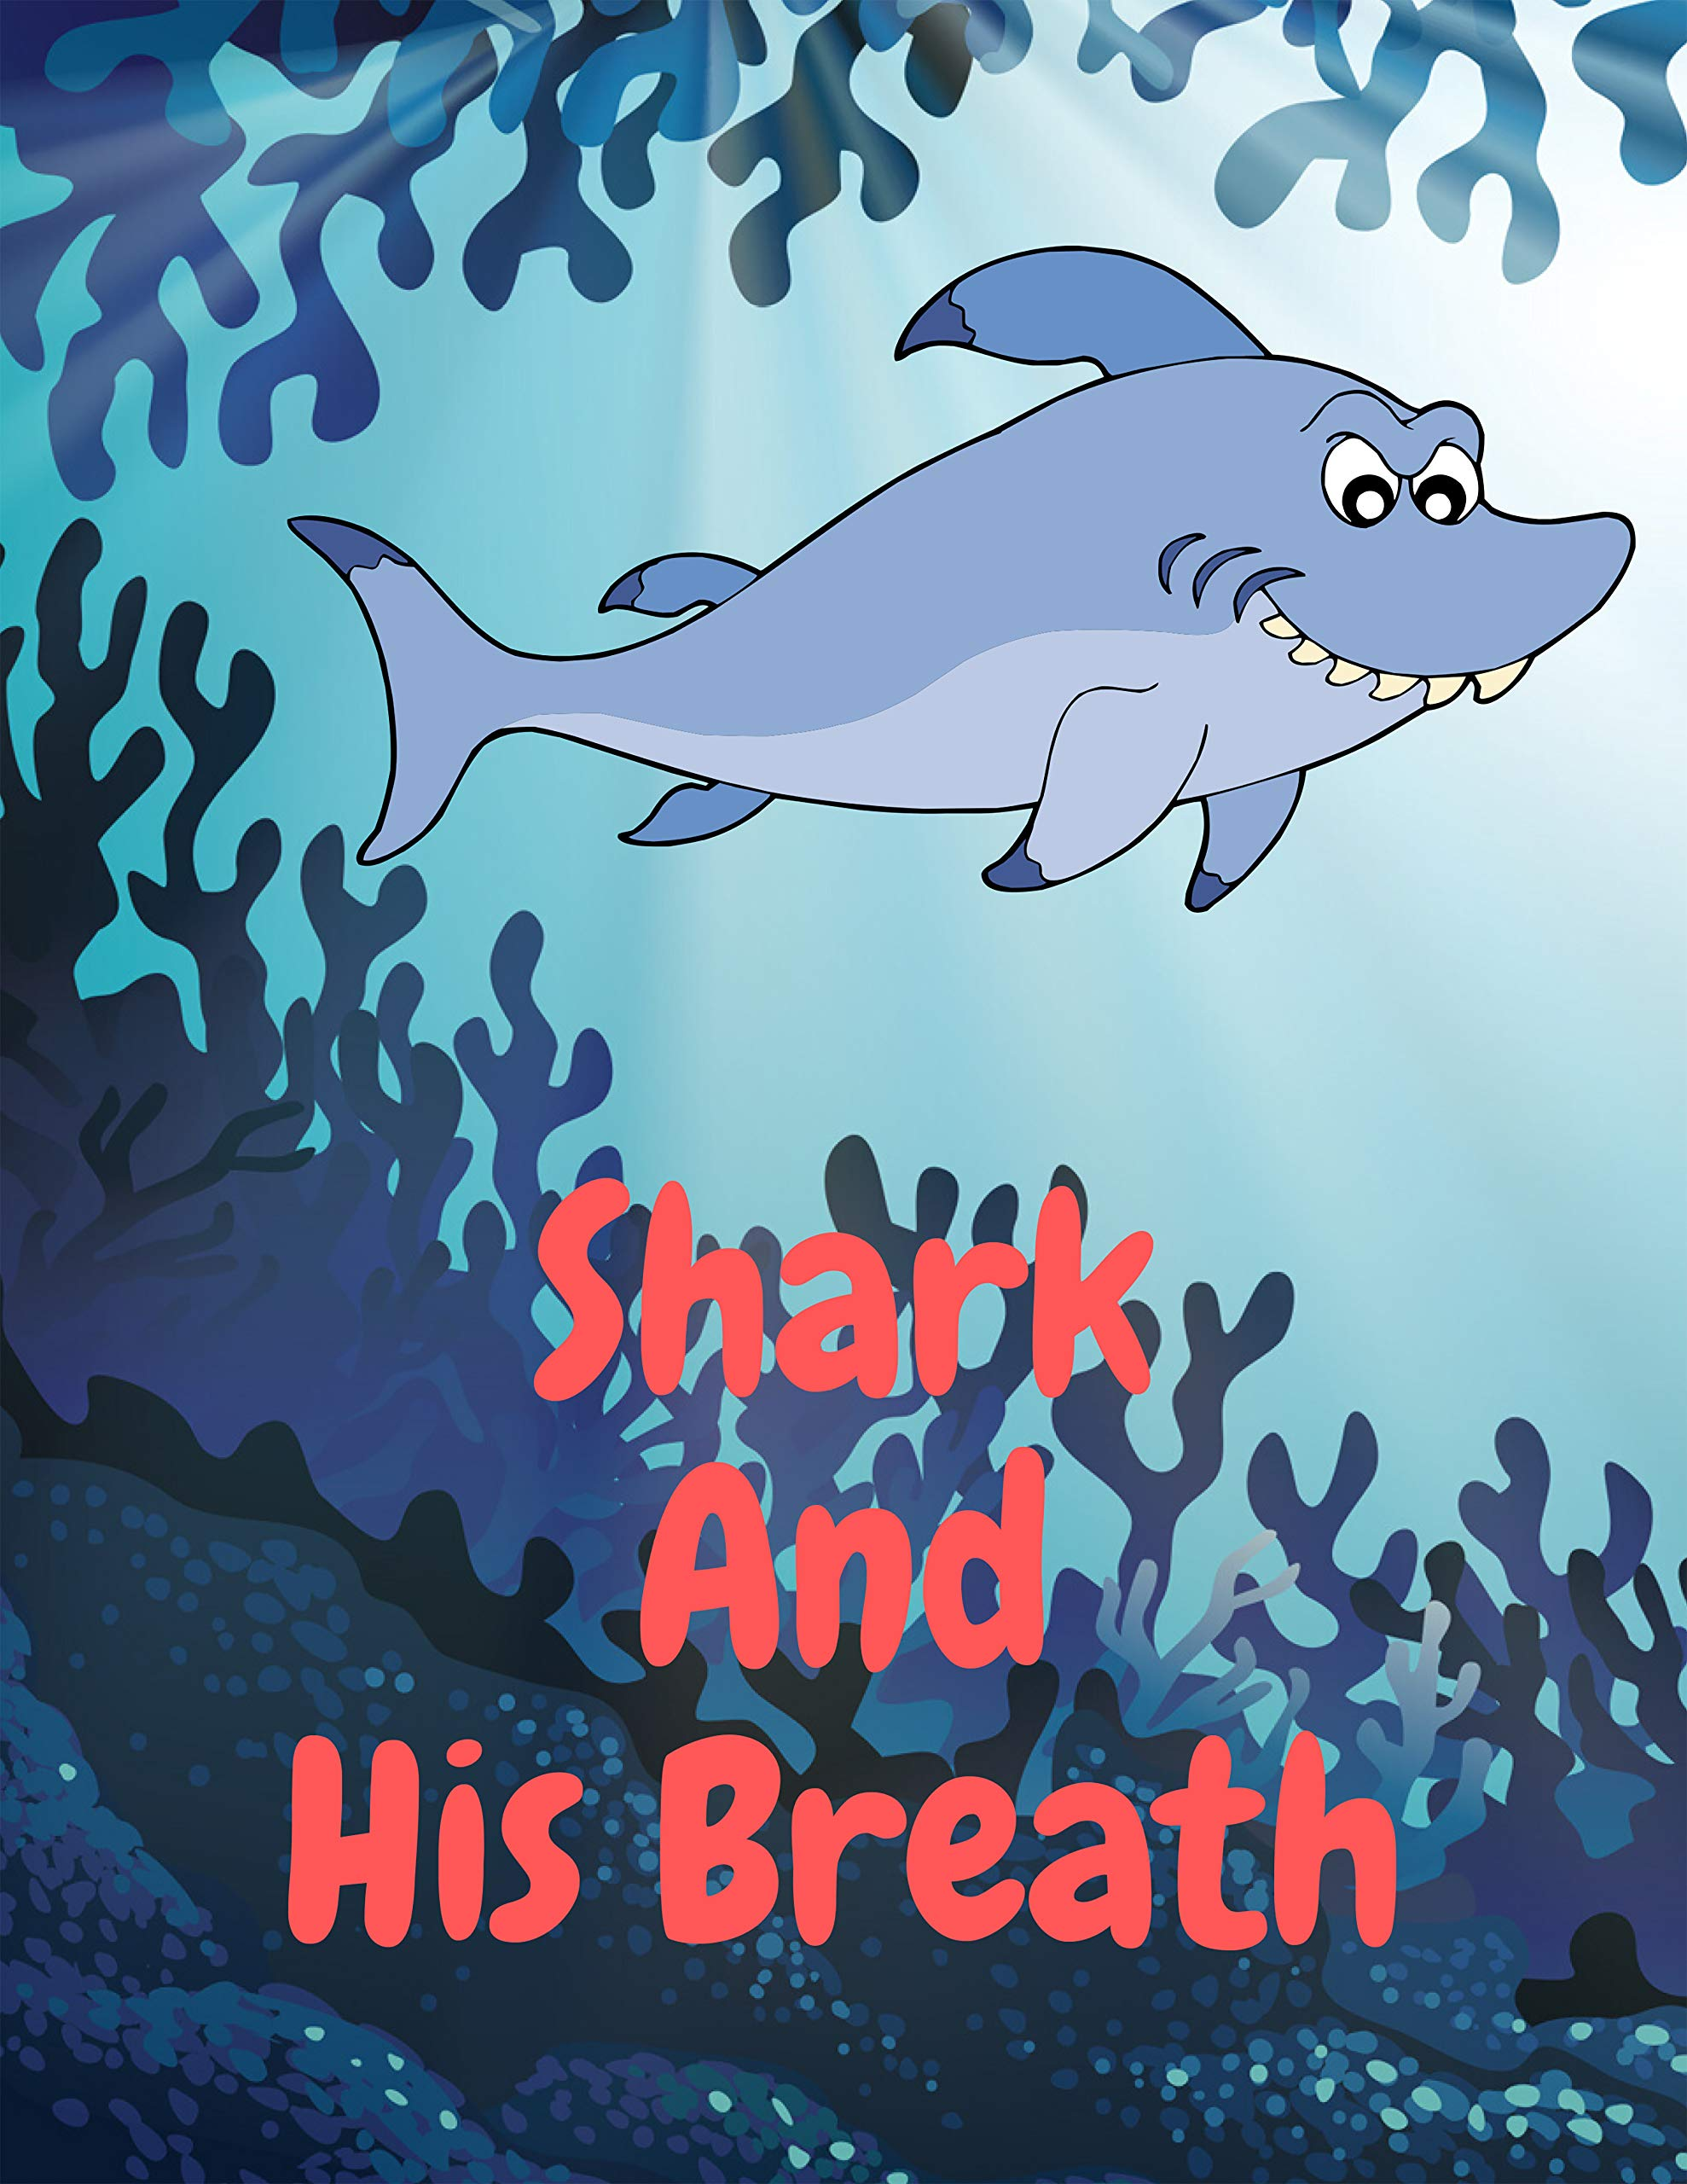 Shark And His Breath: Shark books for kids, Bedtime story, Fable Of Shark And His Breath, tales to help children fall asleep fast. Animal Short Stories, ... Book For Kids 2-6 Ages (Smiley Shark 4)